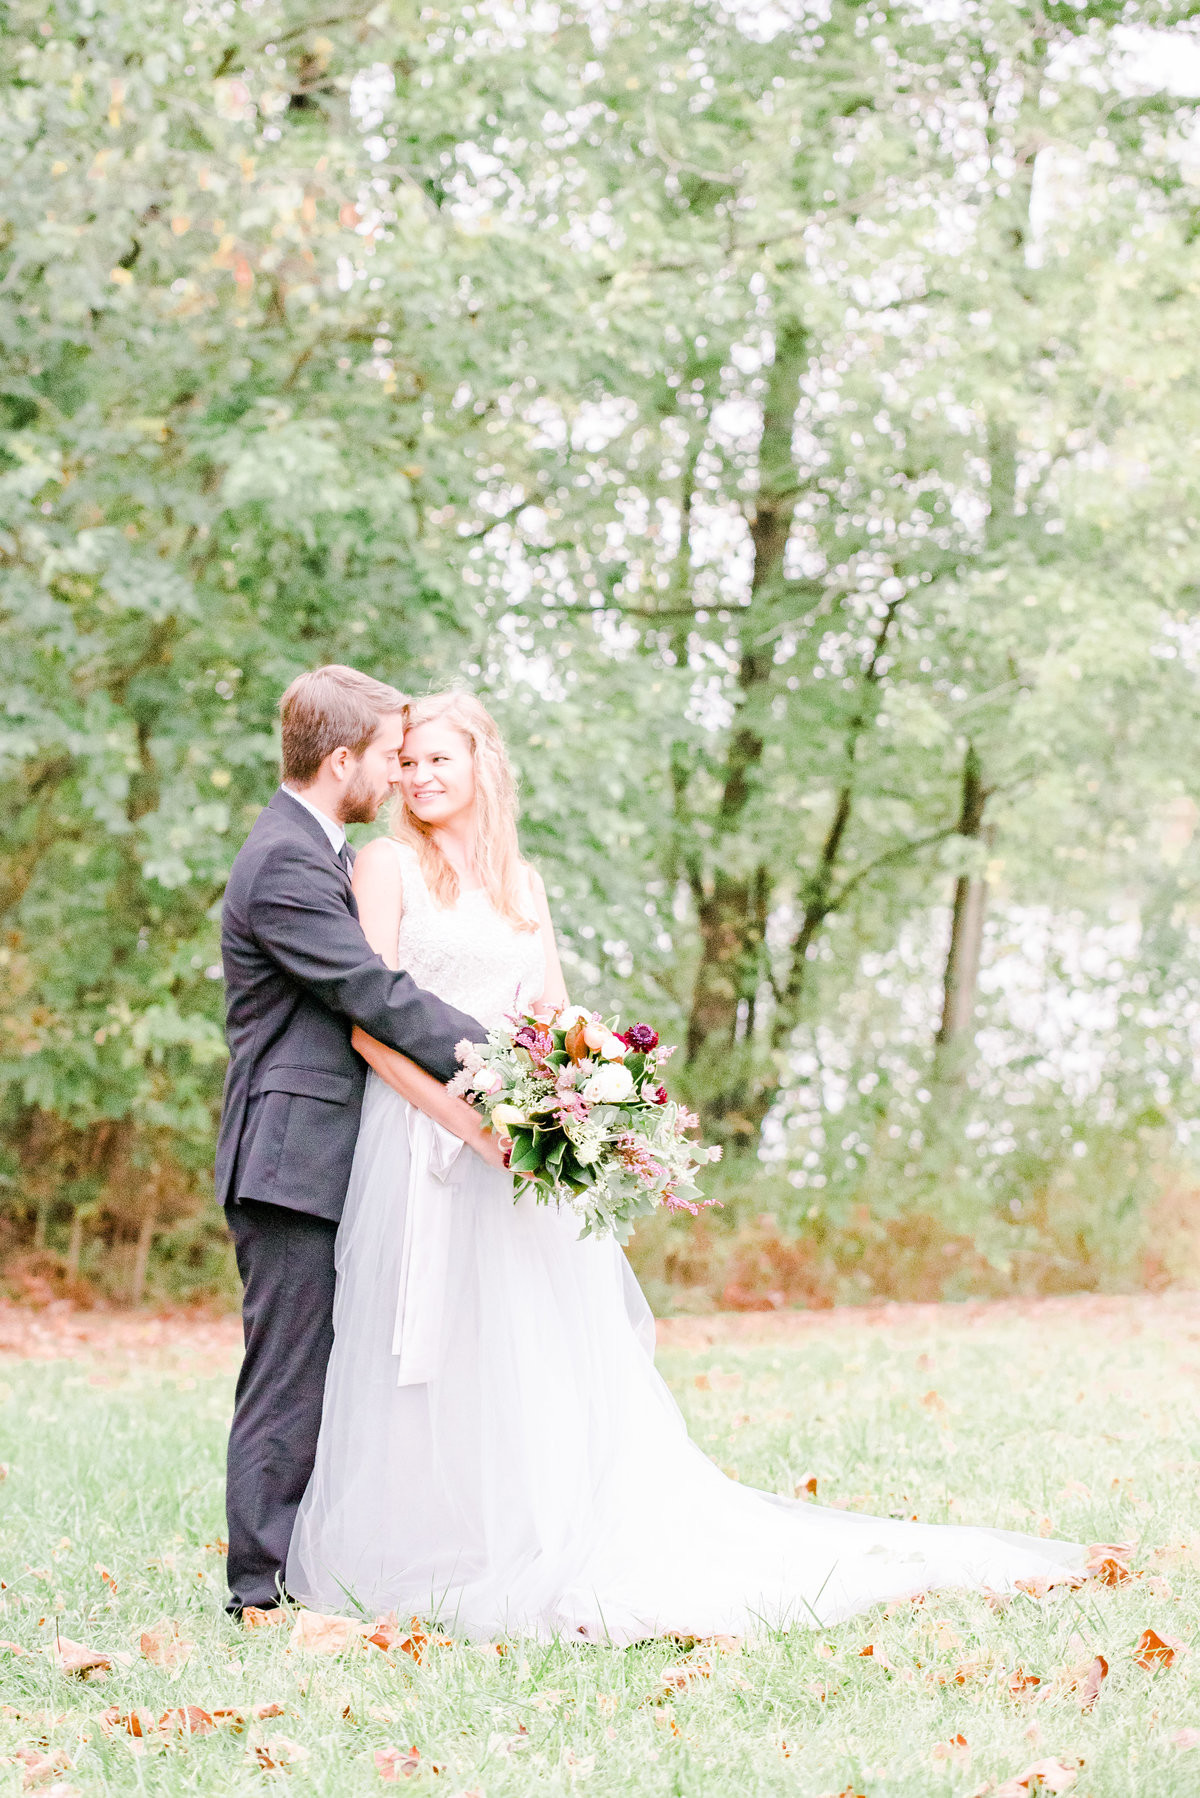 Cait Potter Creative LLC Final Version Canoe Adventure Wedding -53